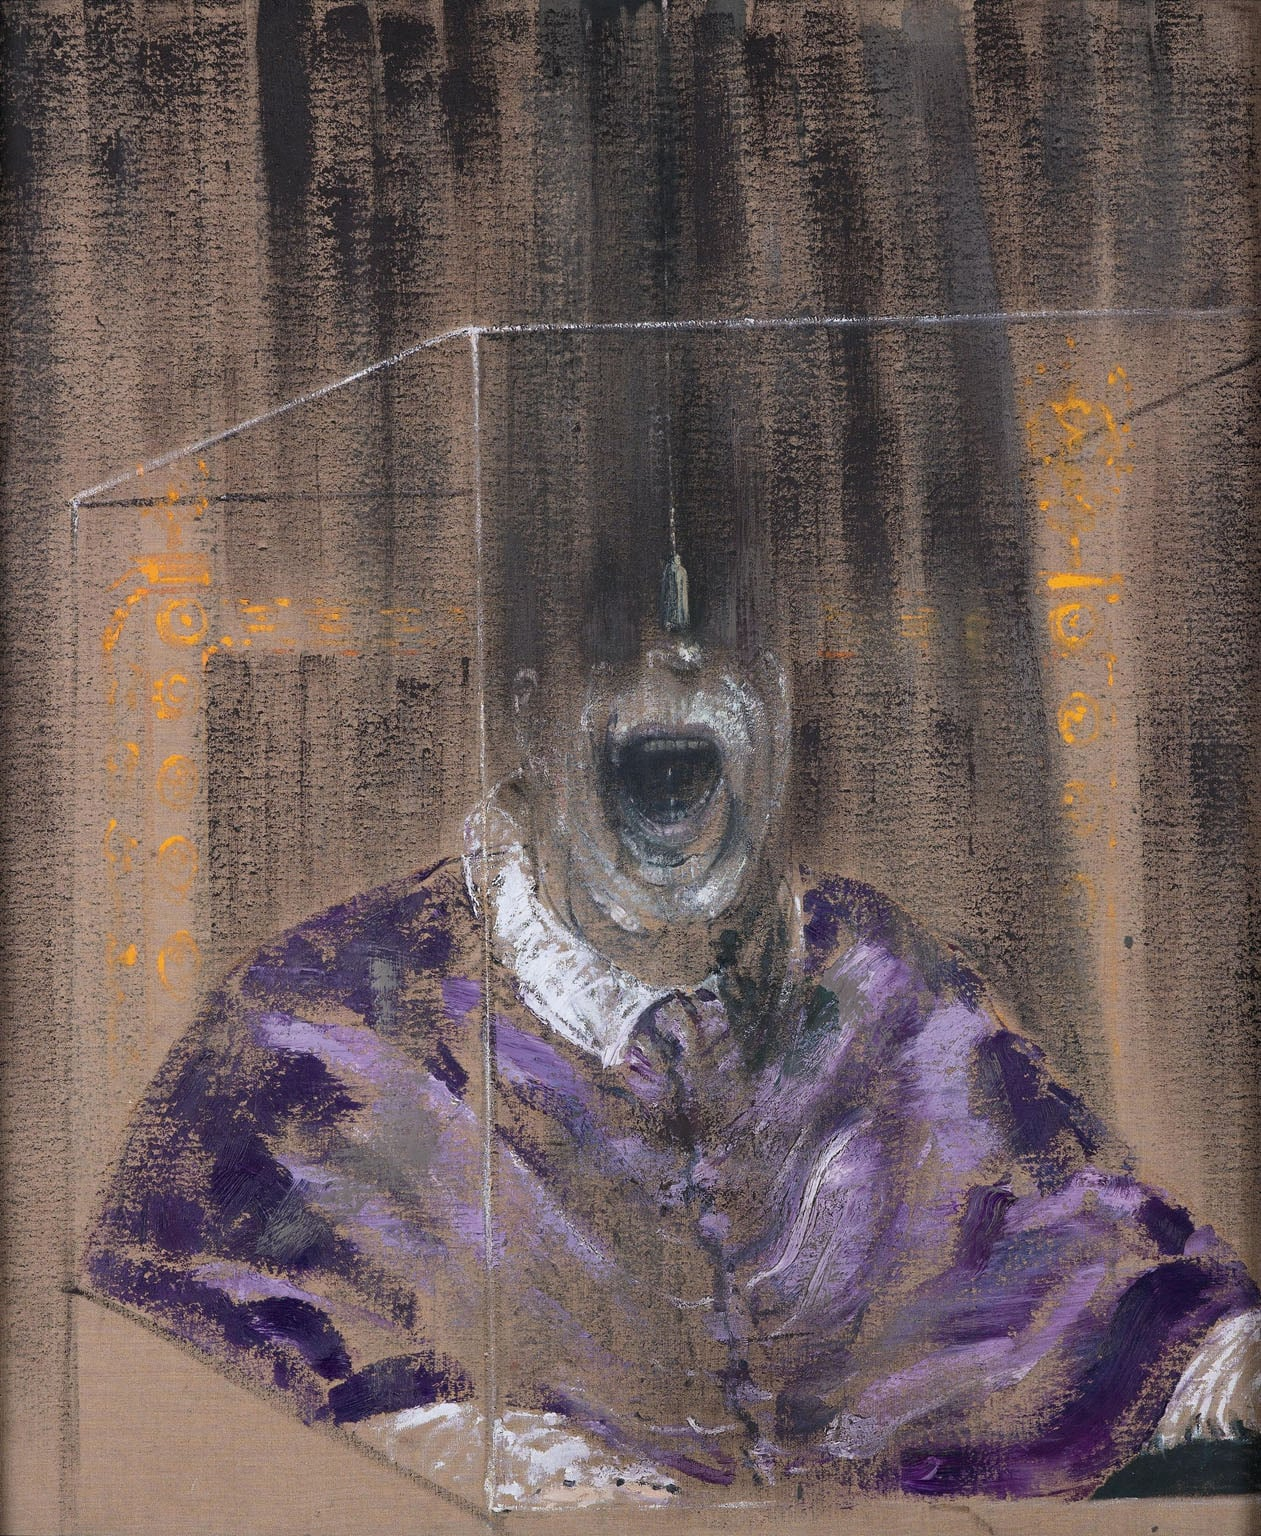 3. Francis Bacon, Head VI, 1949 - Arts Council Collection (on loan to Manchester Art Gallery)